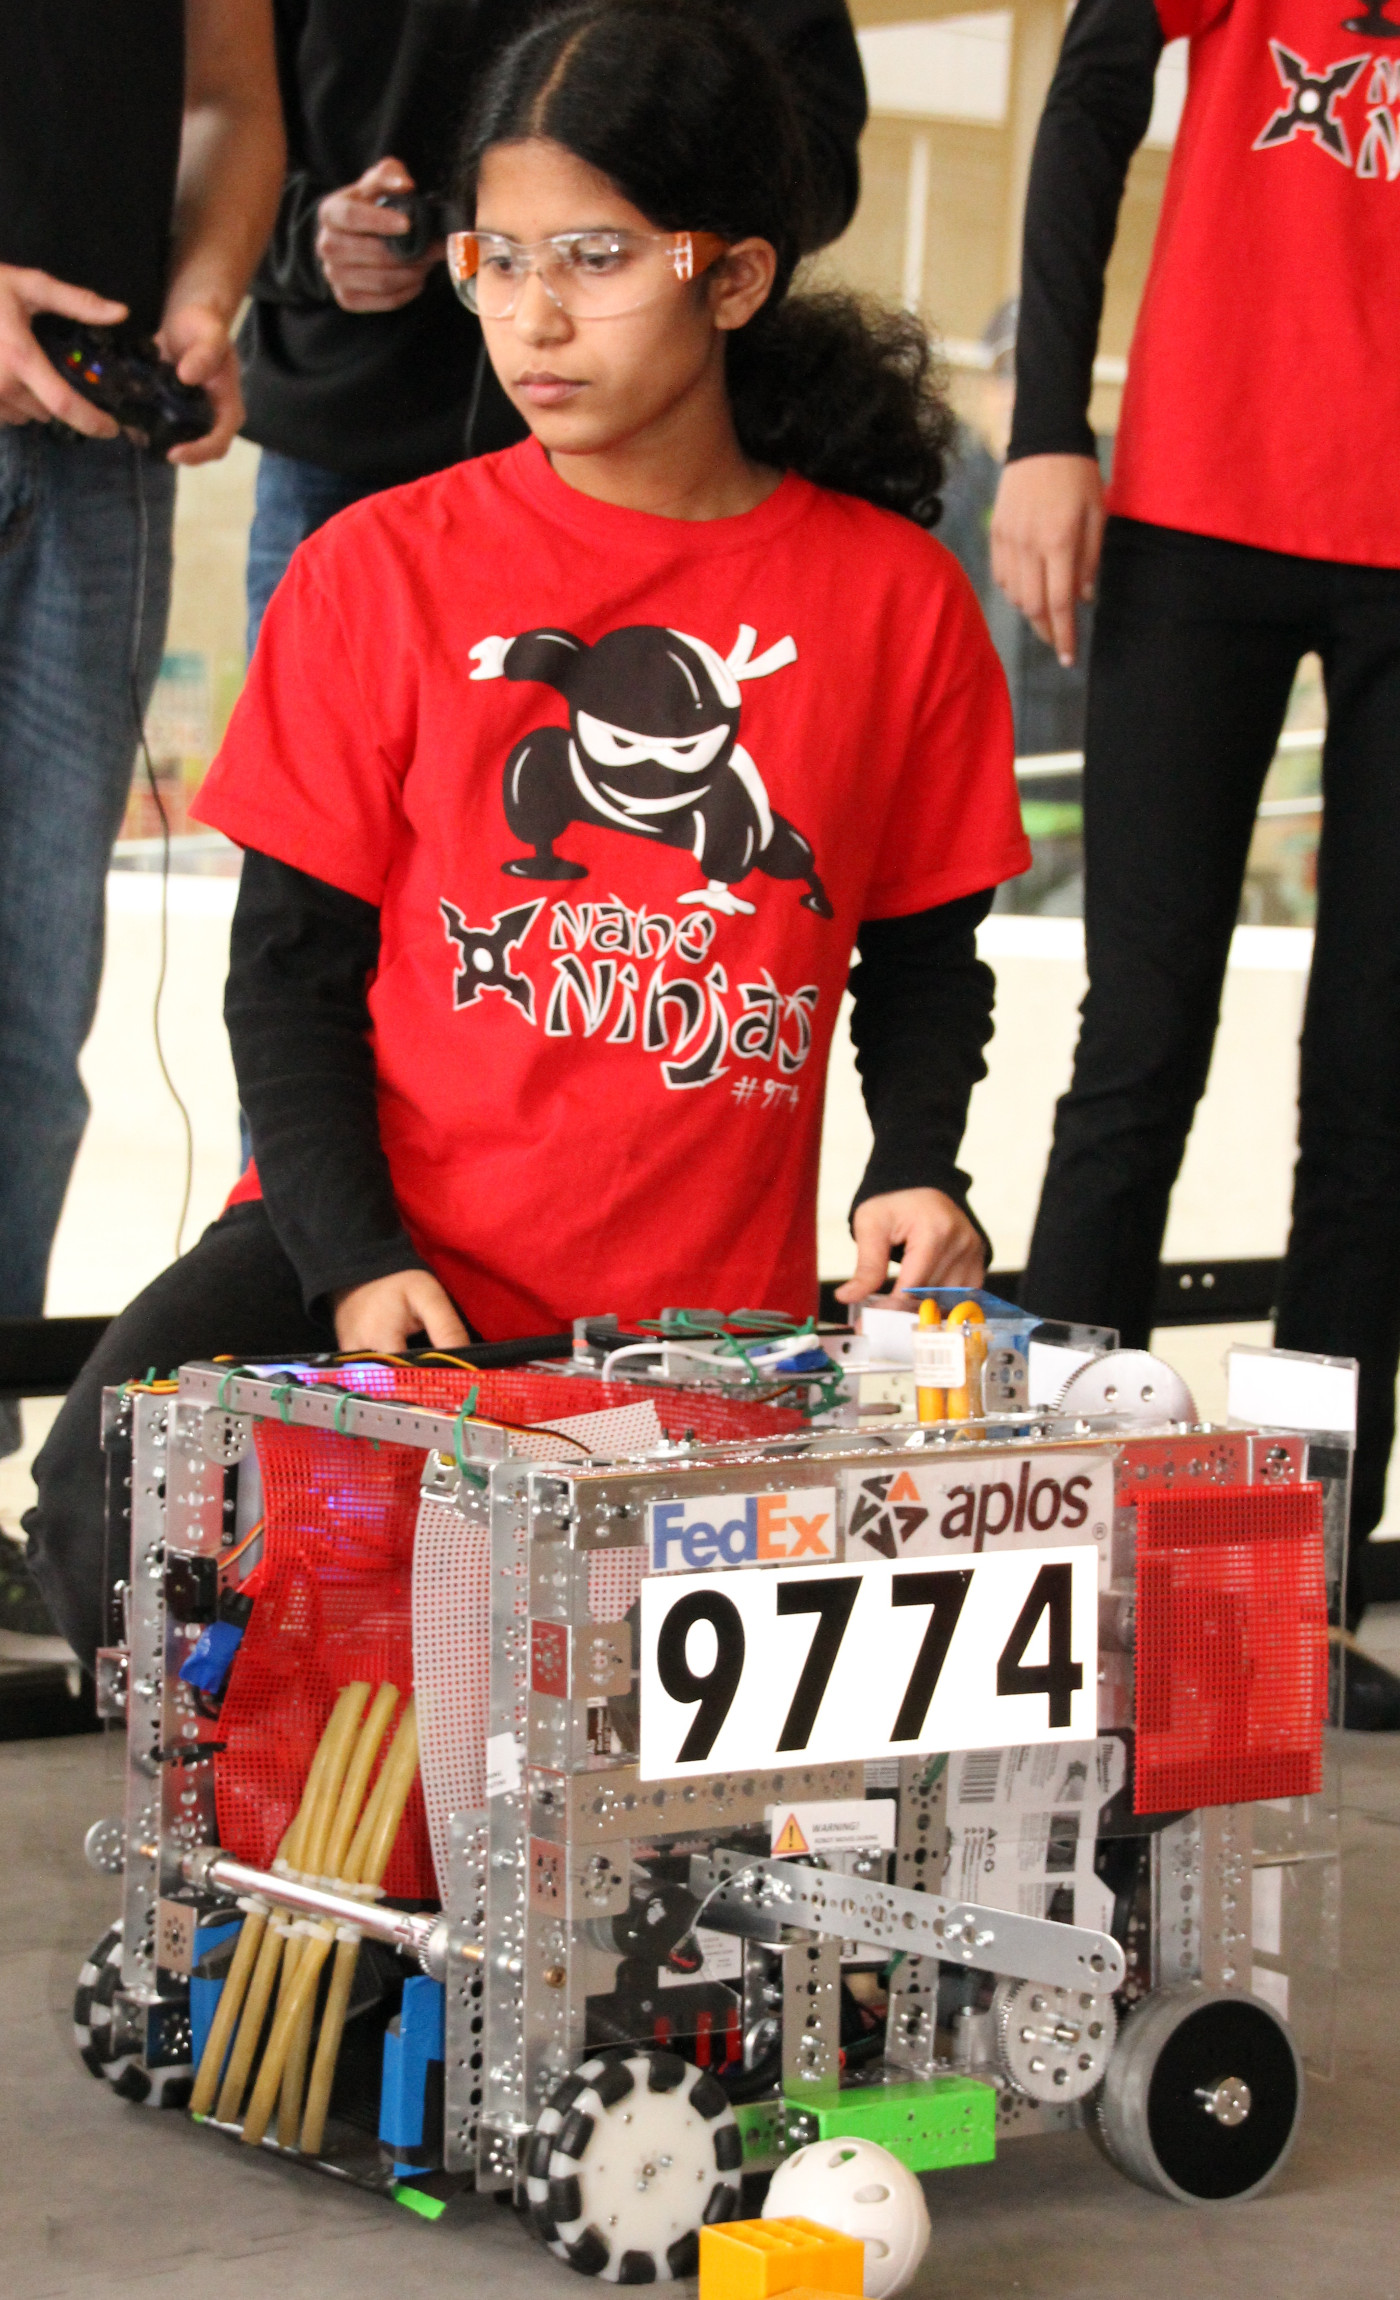 The Nano Ninjas demo their robot during the qualifier!